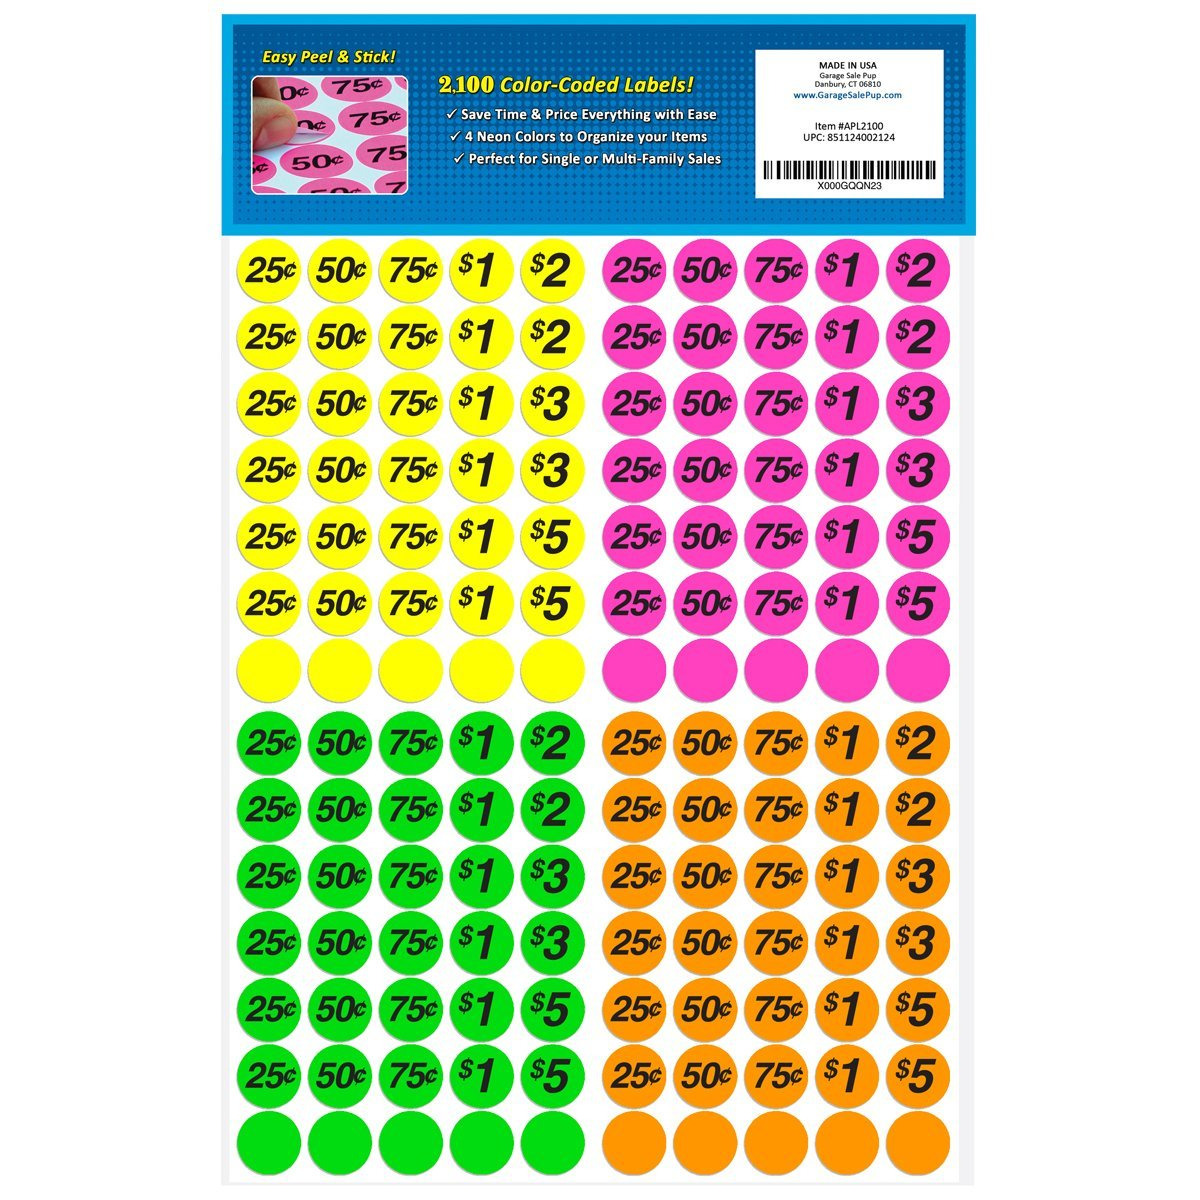 1200x1200 Garage Sale Pup Preprinted Pricing Labels, Bright